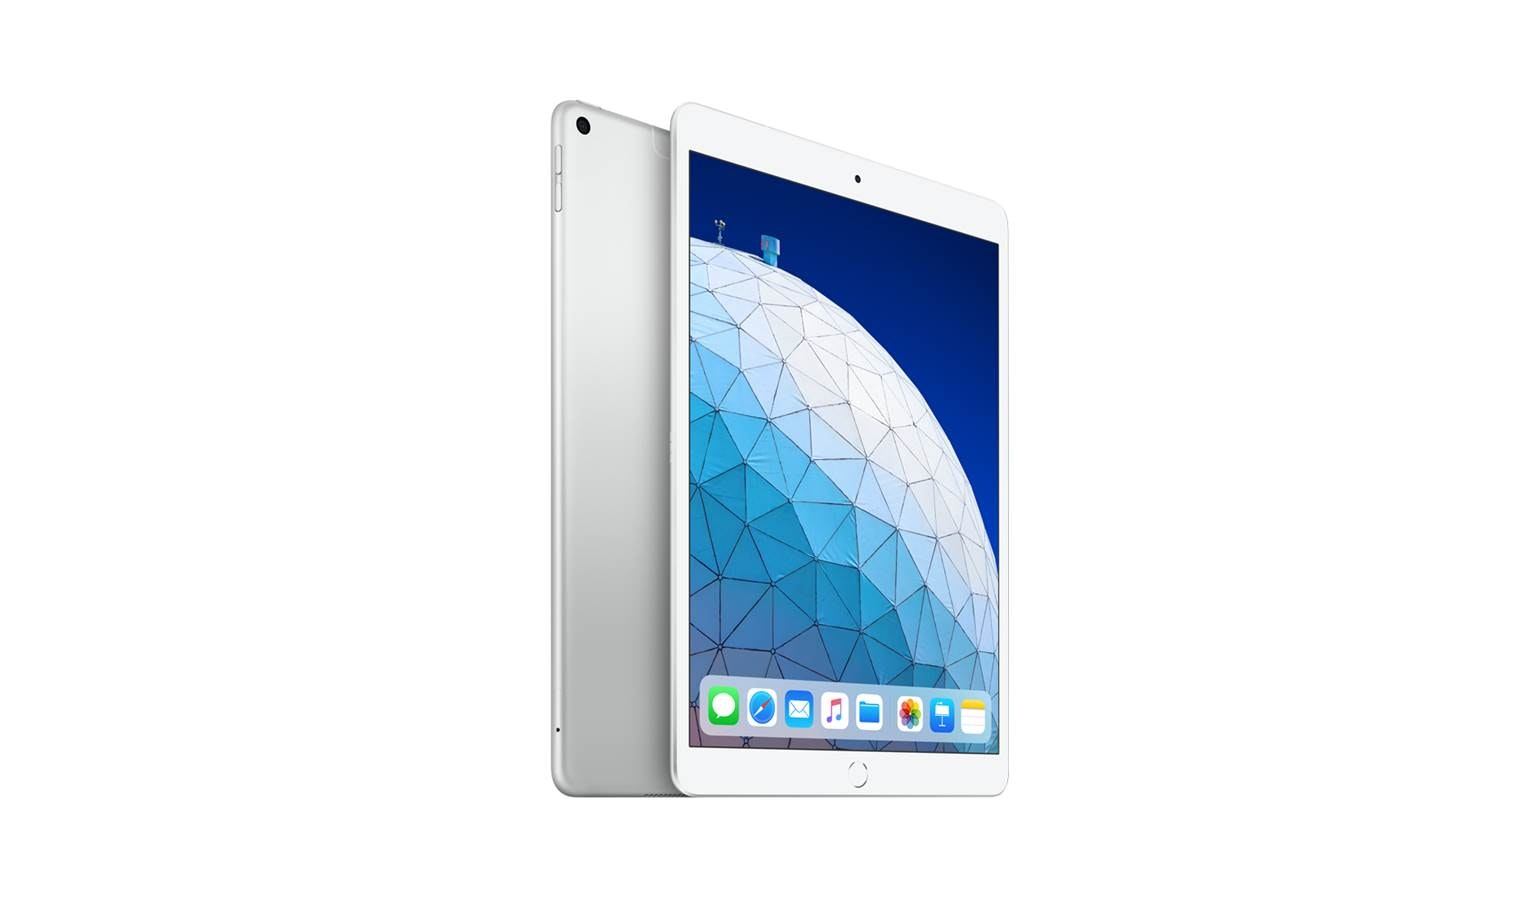 Apple iPad Air 4G (256GB) - Silver (Front)